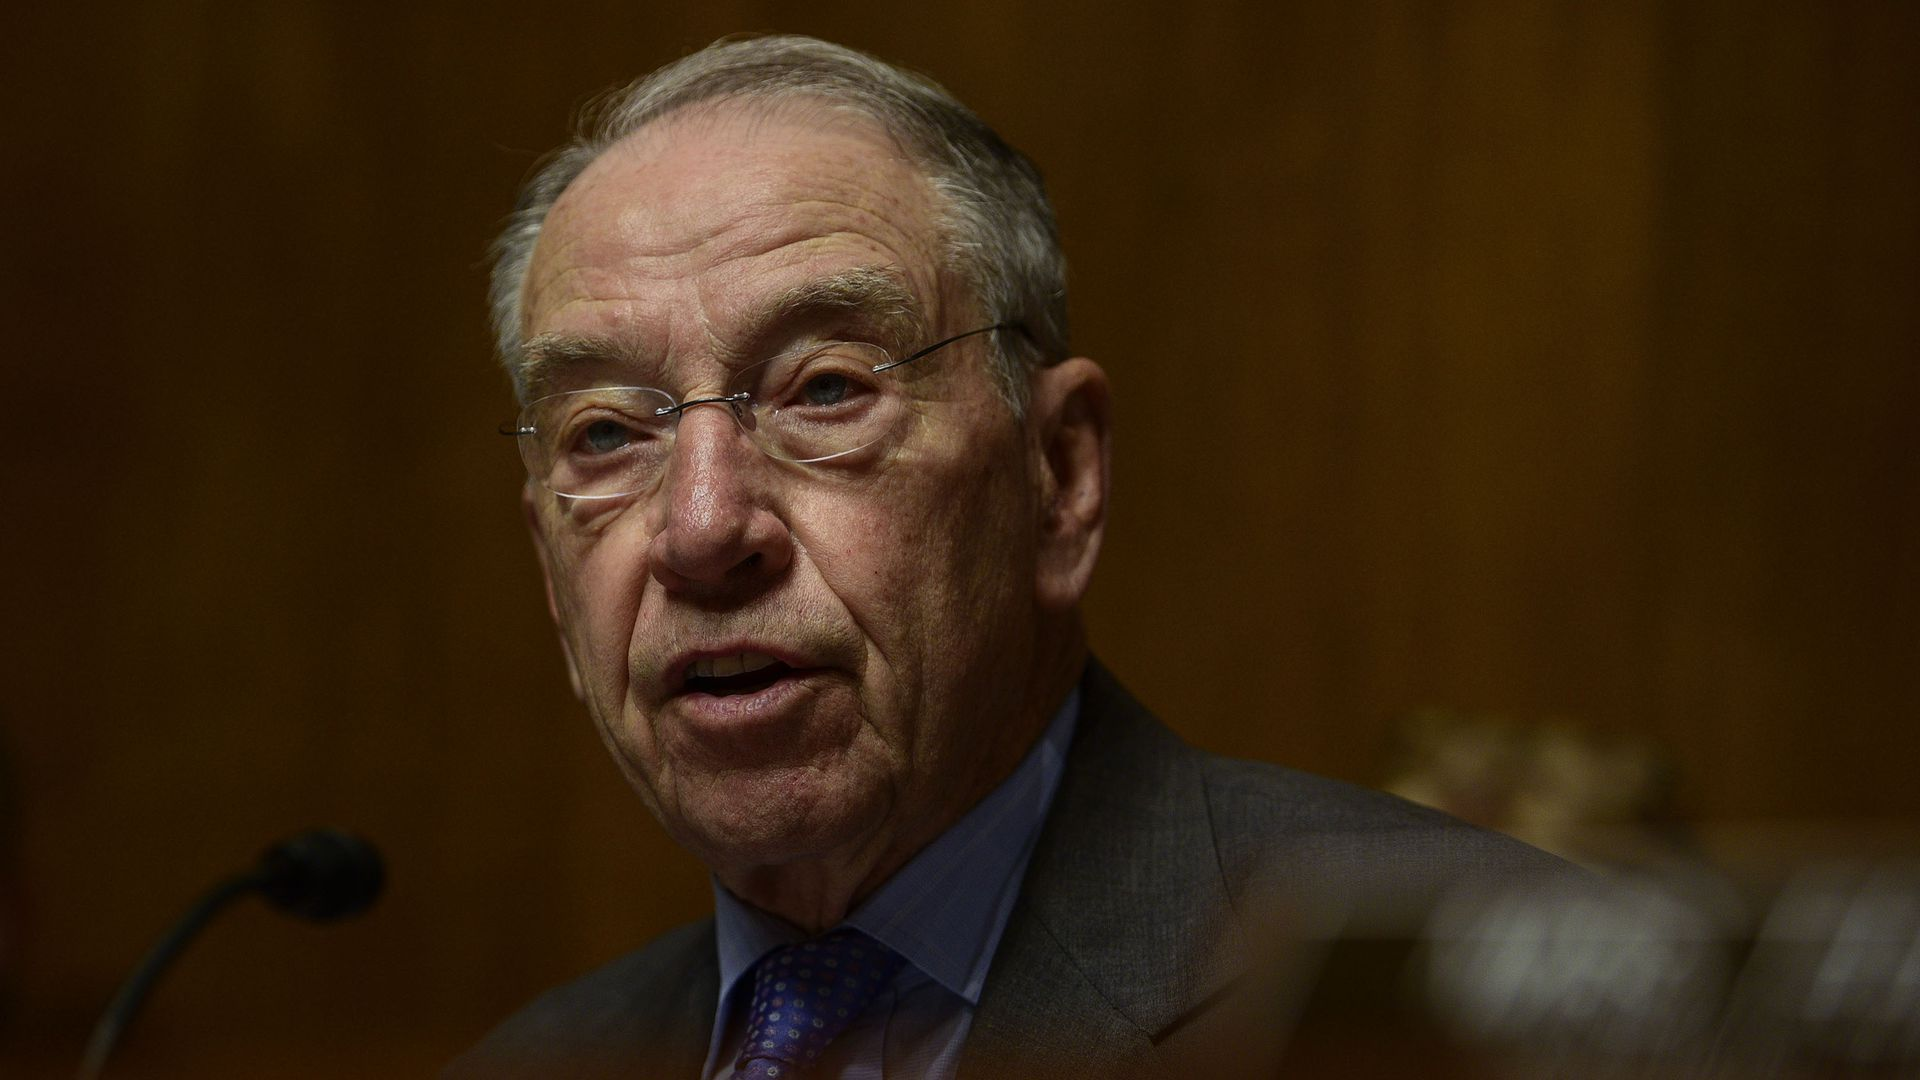 Chuck Grassley to step down as chairman of Senate Judiciary Committee